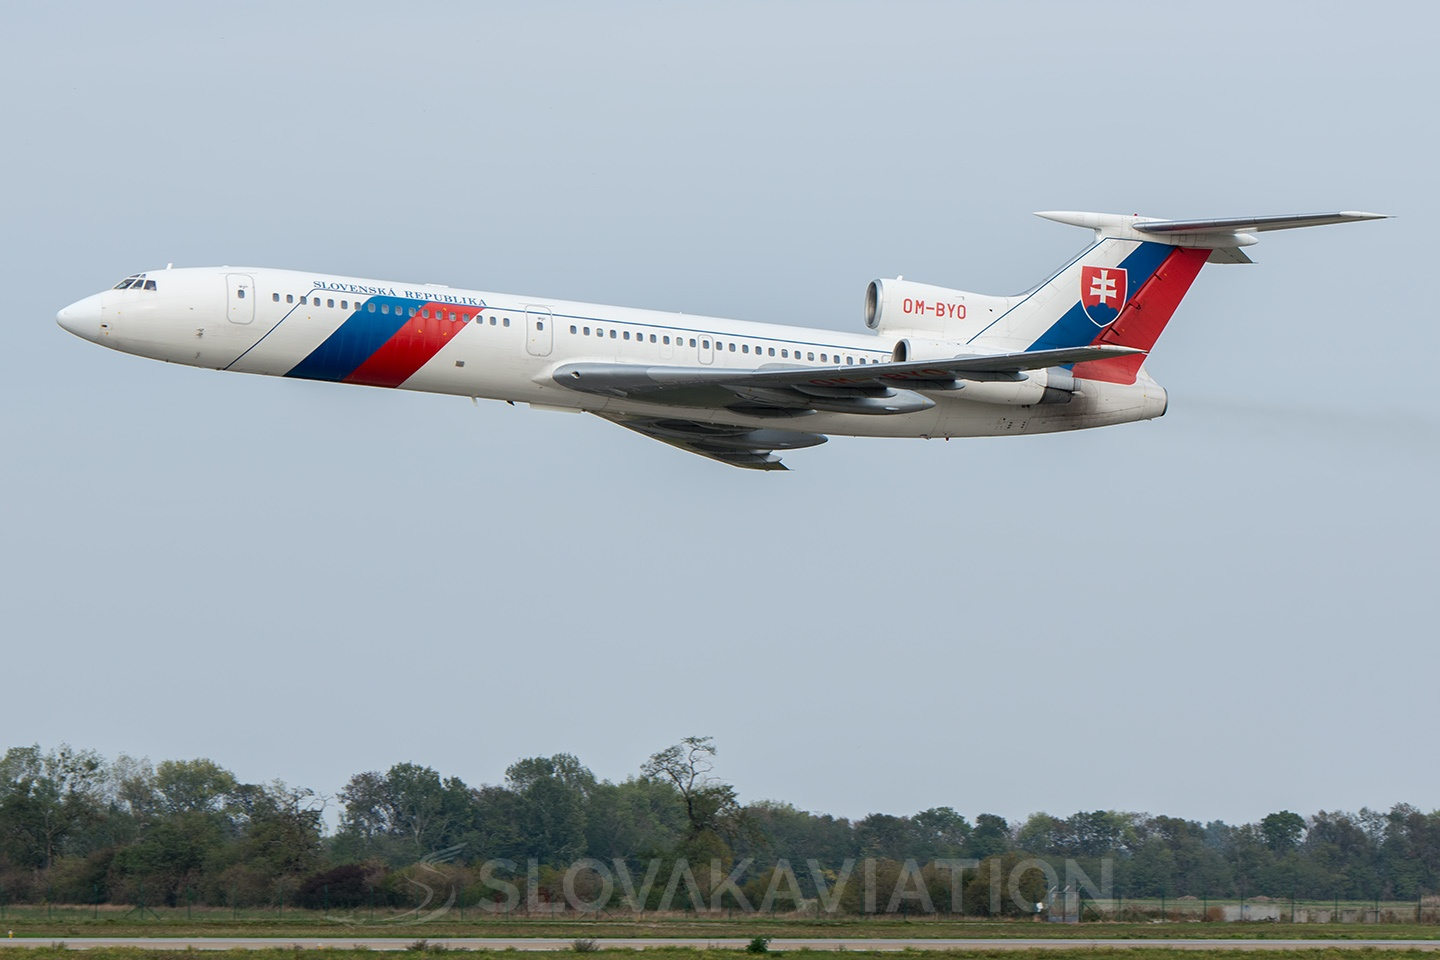 Slovak Government Flying Service Tupolev Tu-154 OM-BYO